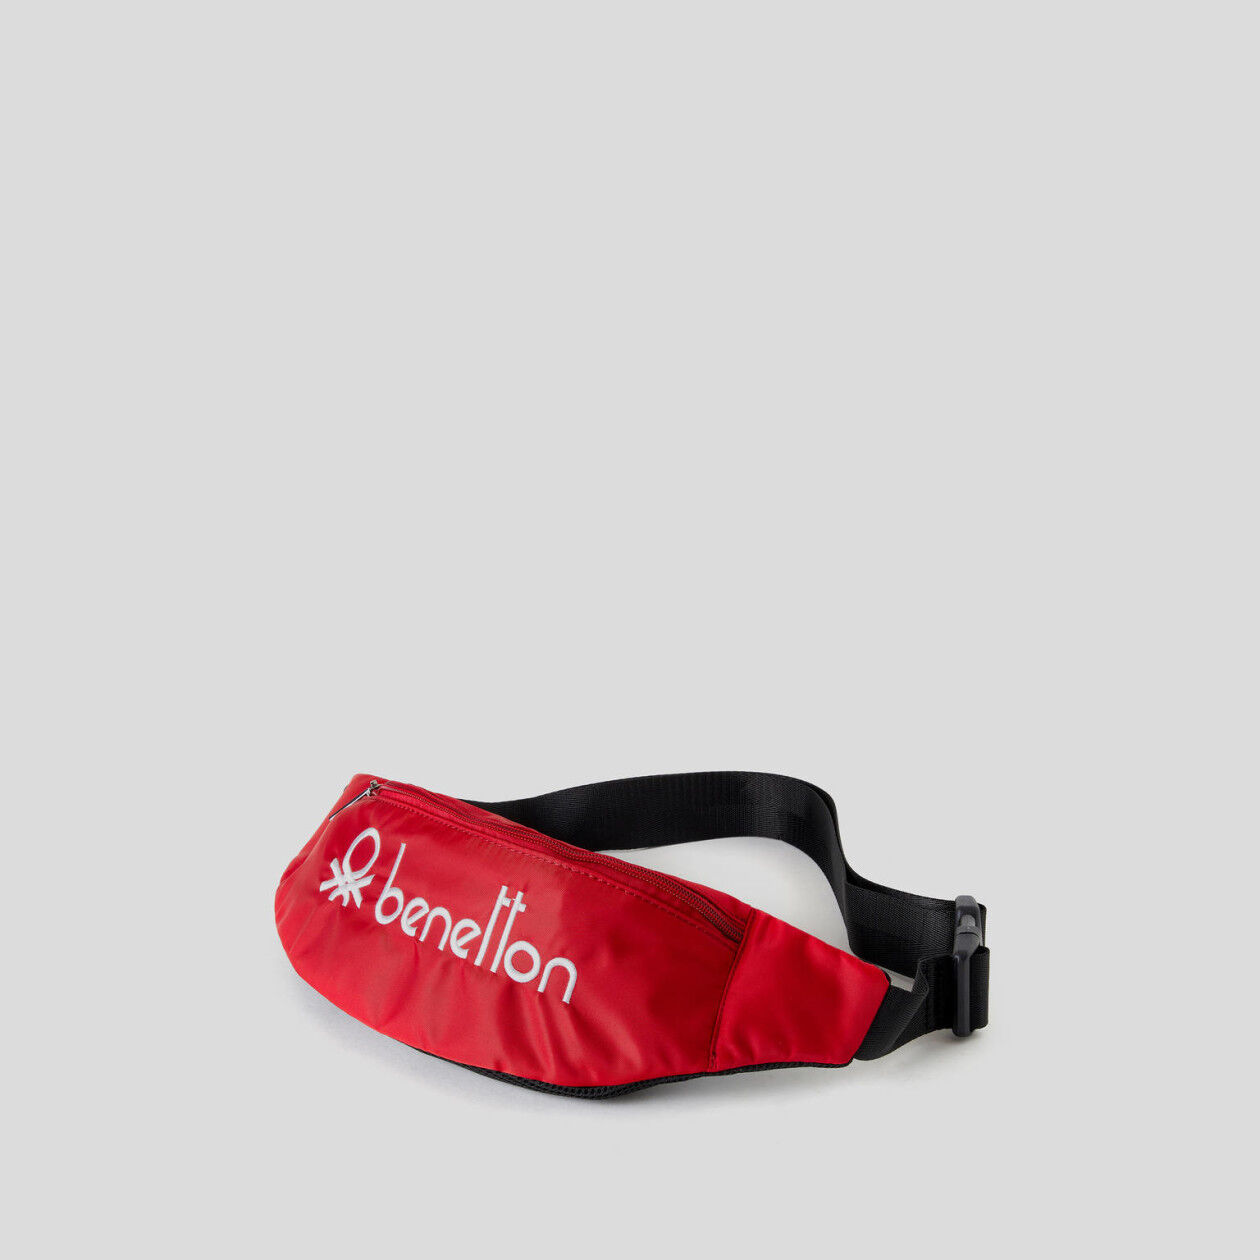 Unisex bum bag with embroidered logo